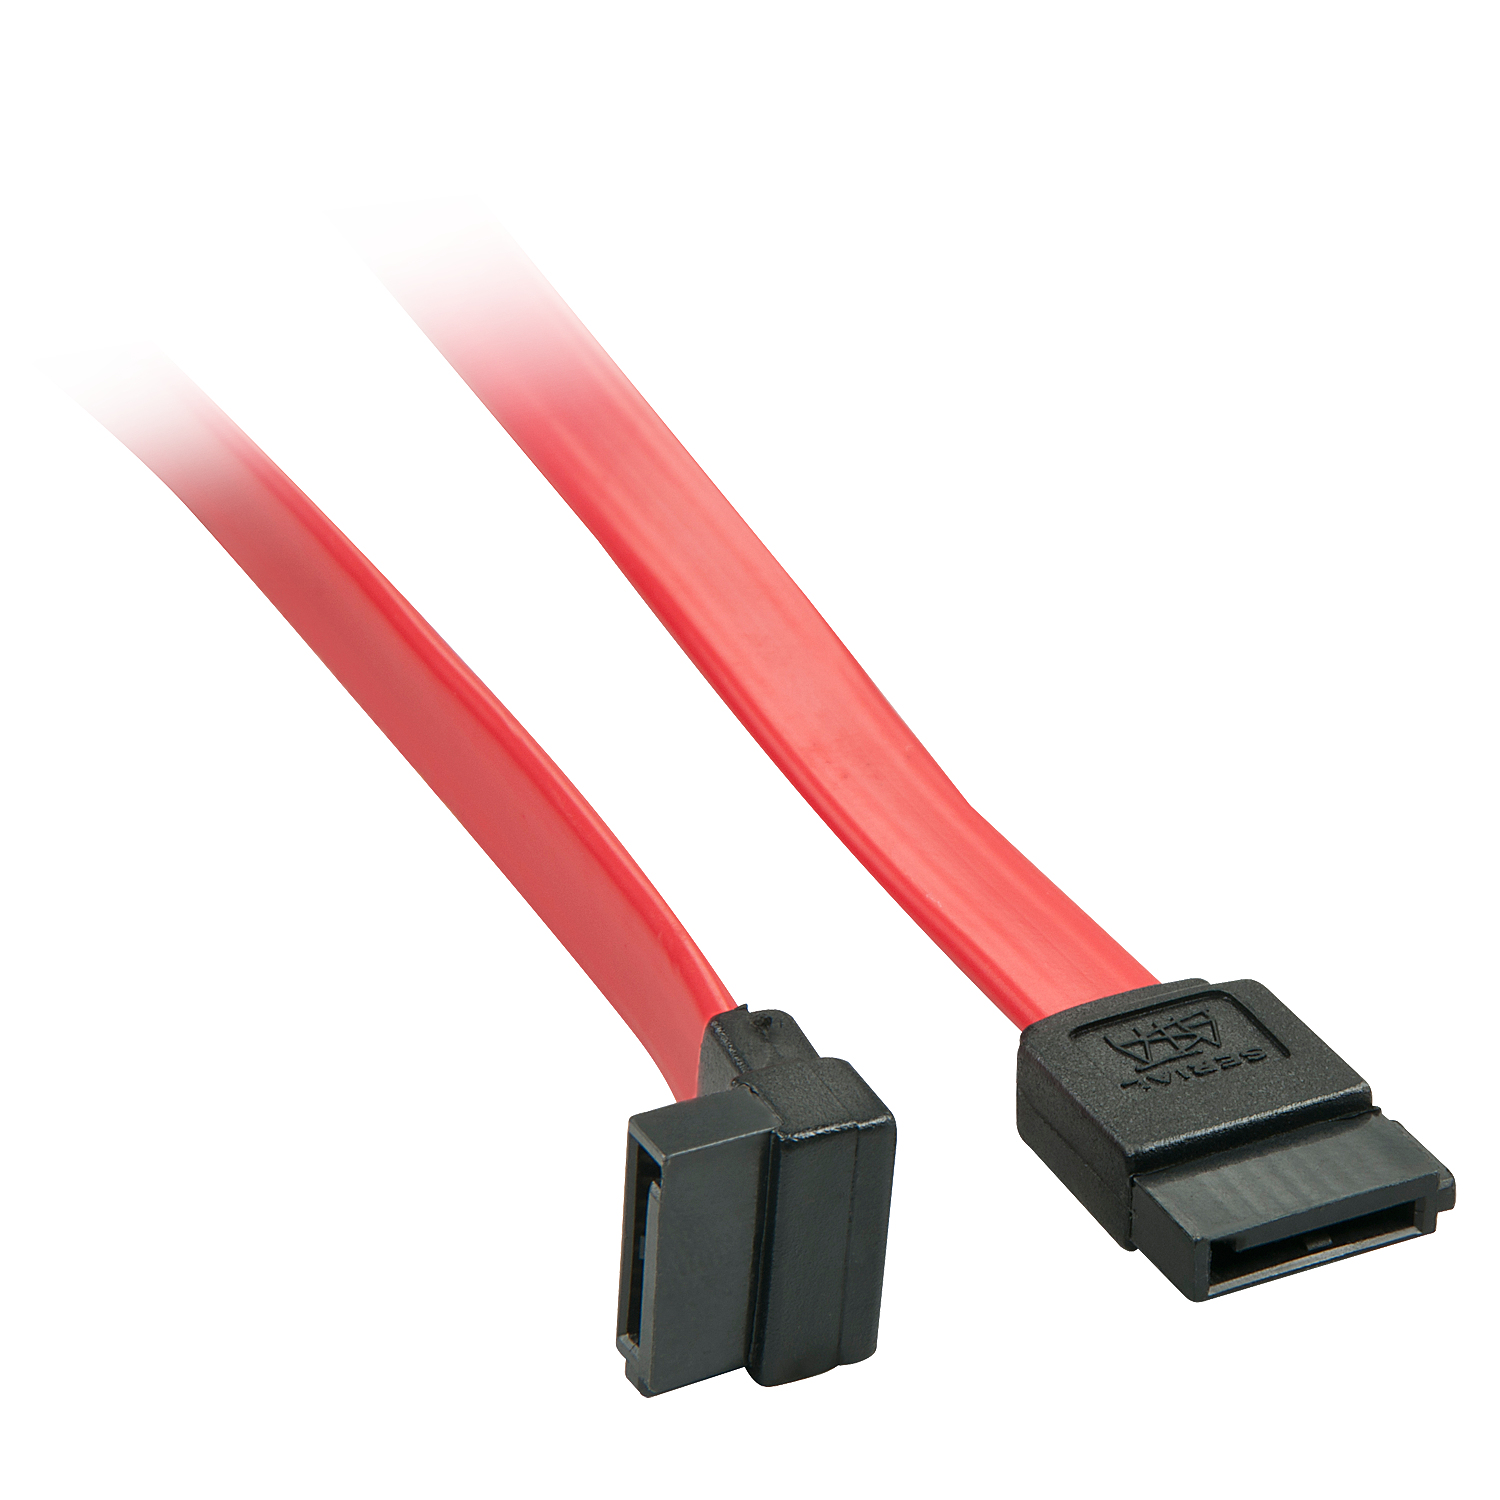 LINDY 33351 SATA CABLE 0.5 M BLACK, RED 7-PIN